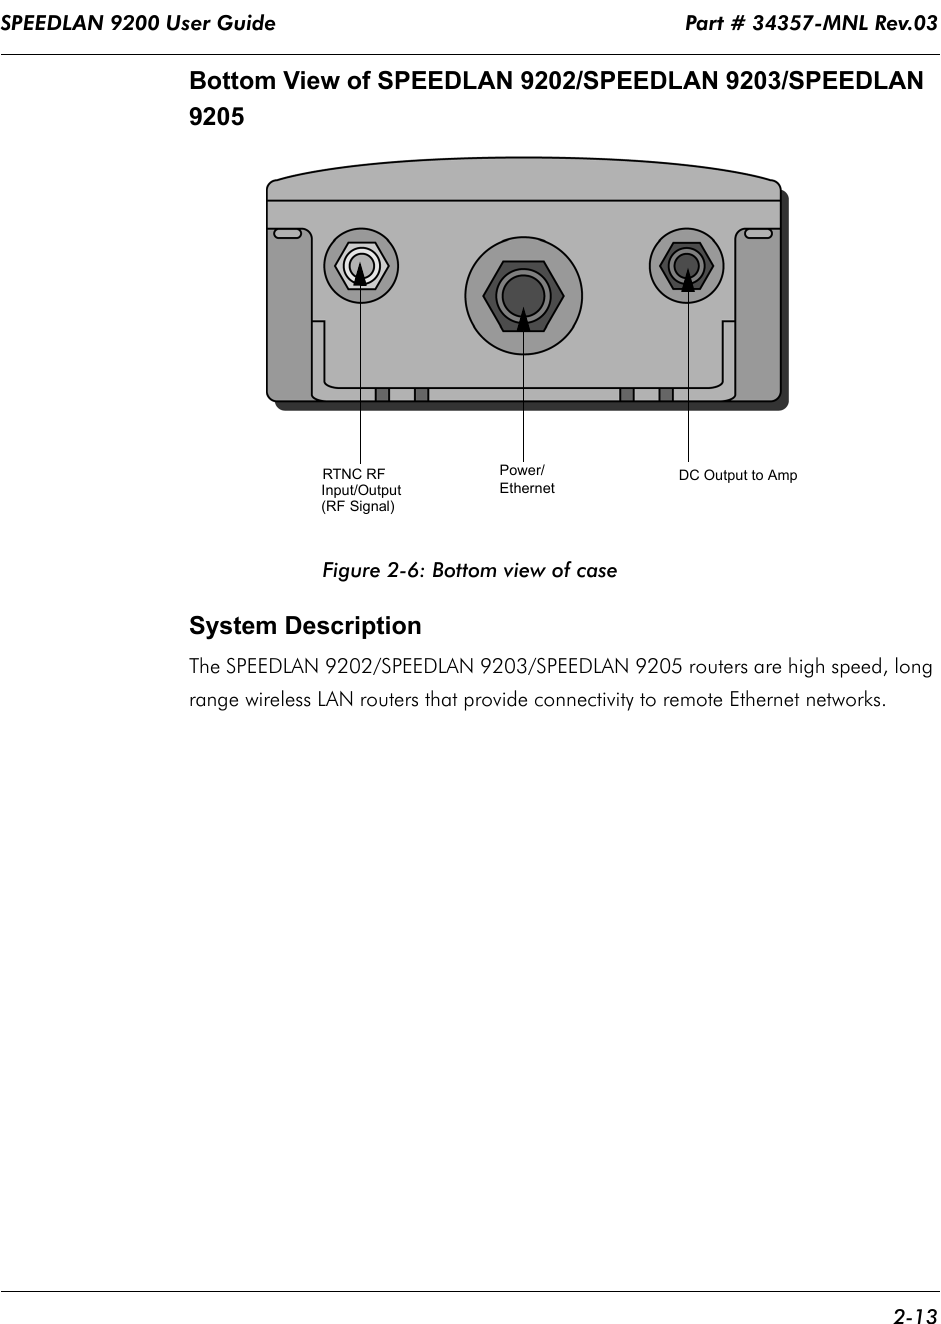 SPEEDLAN 9200 User Guide                                                                   Part # 34357-MNL Rev.03      2-13                                                                                                                                                              Bottom View of SPEEDLAN 9202/SPEEDLAN 9203/SPEEDLAN 9205Figure 2-6: Bottom view of caseSystem Description    The SPEEDLAN 9202/SPEEDLAN 9203/SPEEDLAN 9205 routers are high speed, long range wireless LAN routers that provide connectivity to remote Ethernet networks. Input/OutputDC Output to Amp Power/RTNC RF Ethernet (RF Signal)